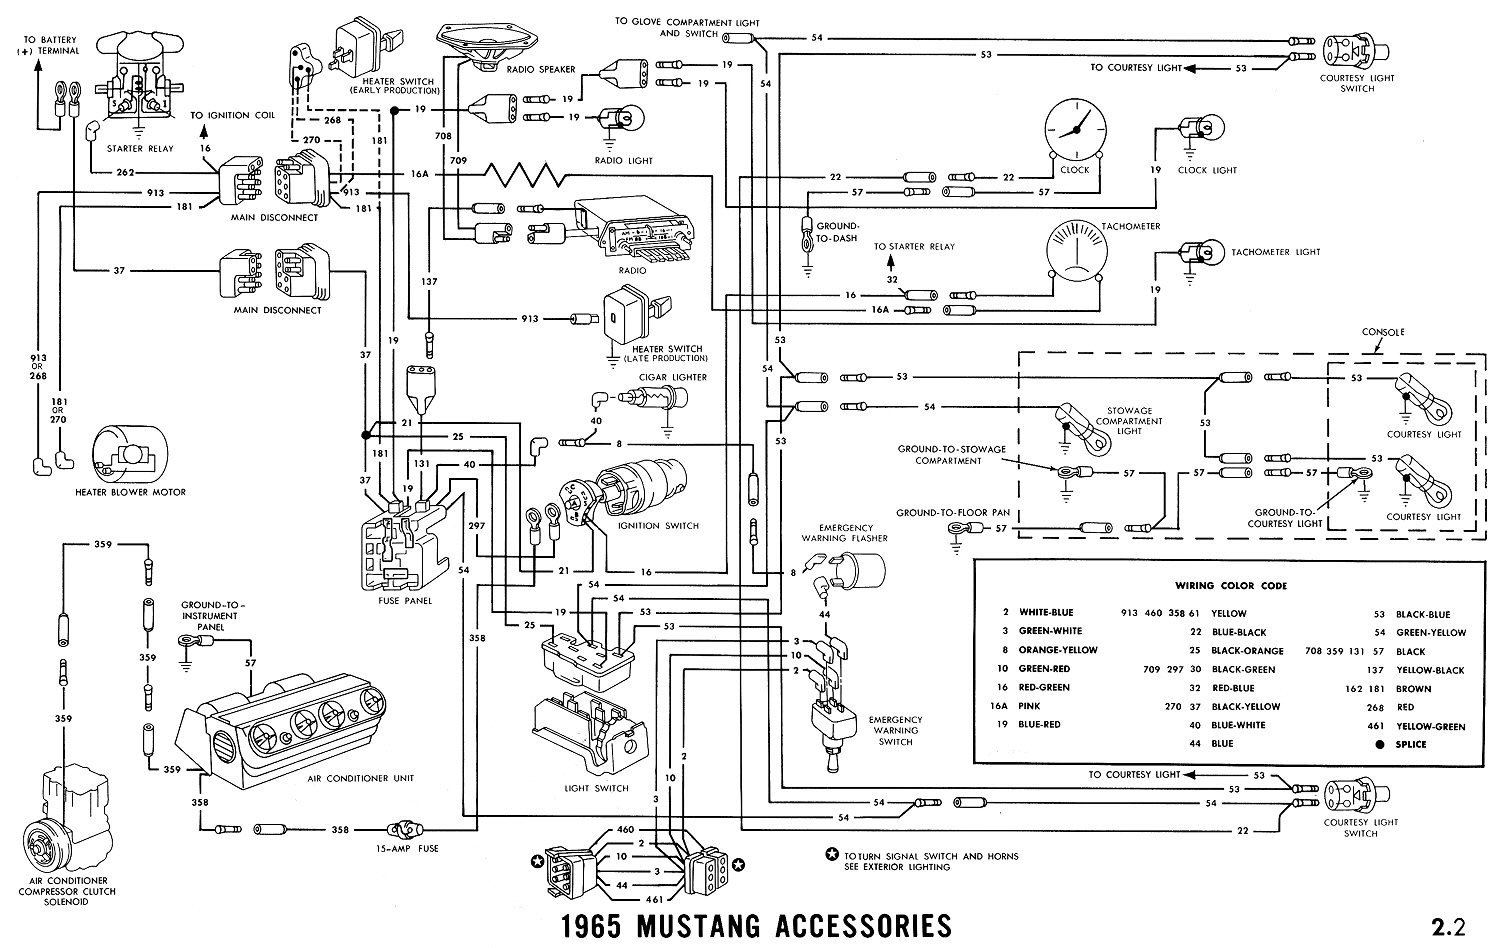 1965i 1965 mustang wiring diagram 1965 lincoln wiring diagram \u2022 wiring 1965 mustang wiring diagram free at honlapkeszites.co